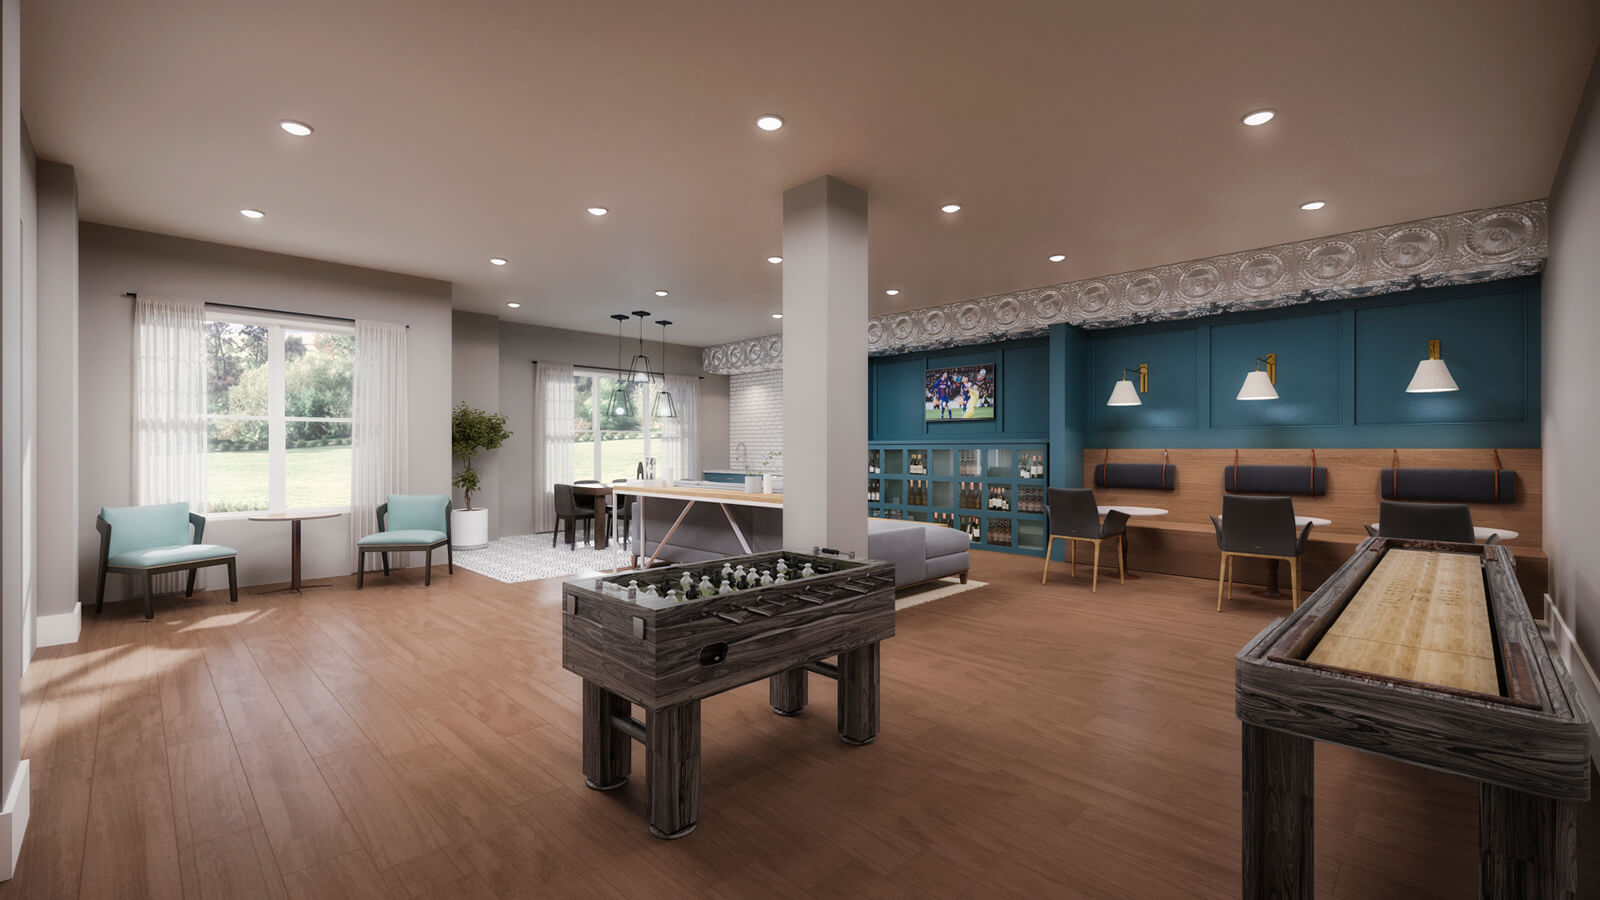 Our well-appointed clubroom with games, comfortable seating, fireplace and catering kitchen.